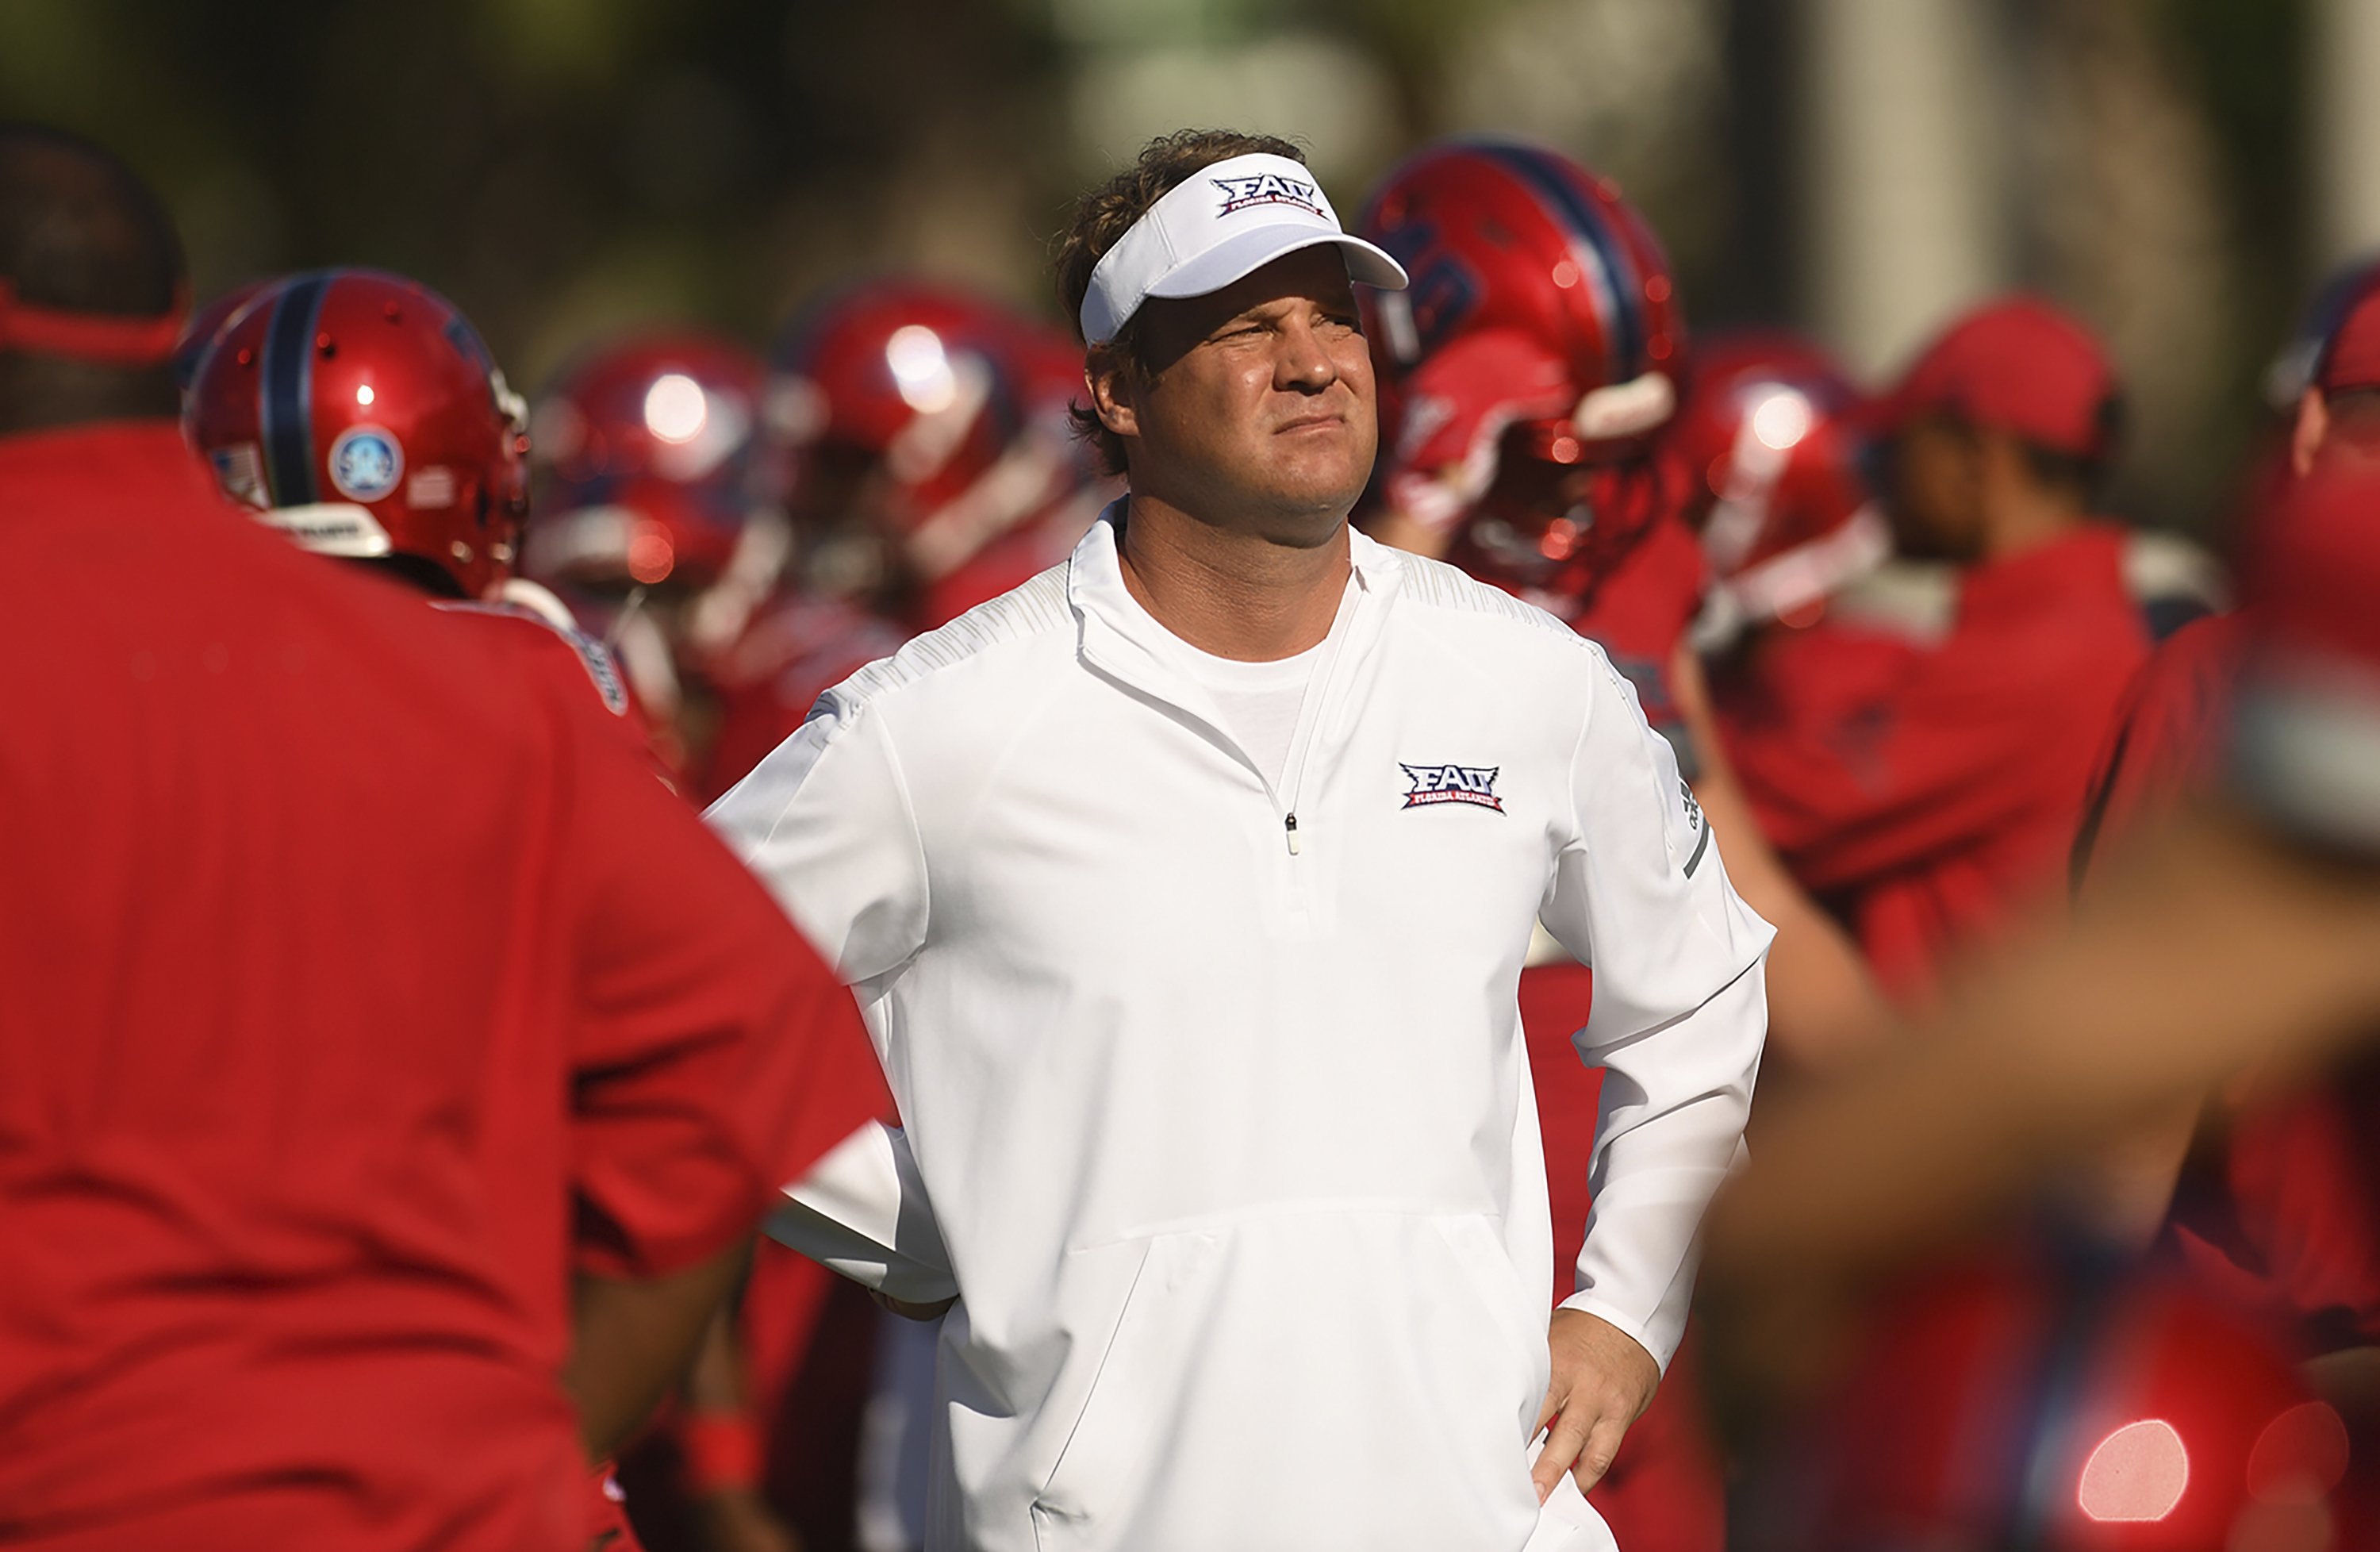 Kiffin becomes coach at Ole Miss, steps down at FAU